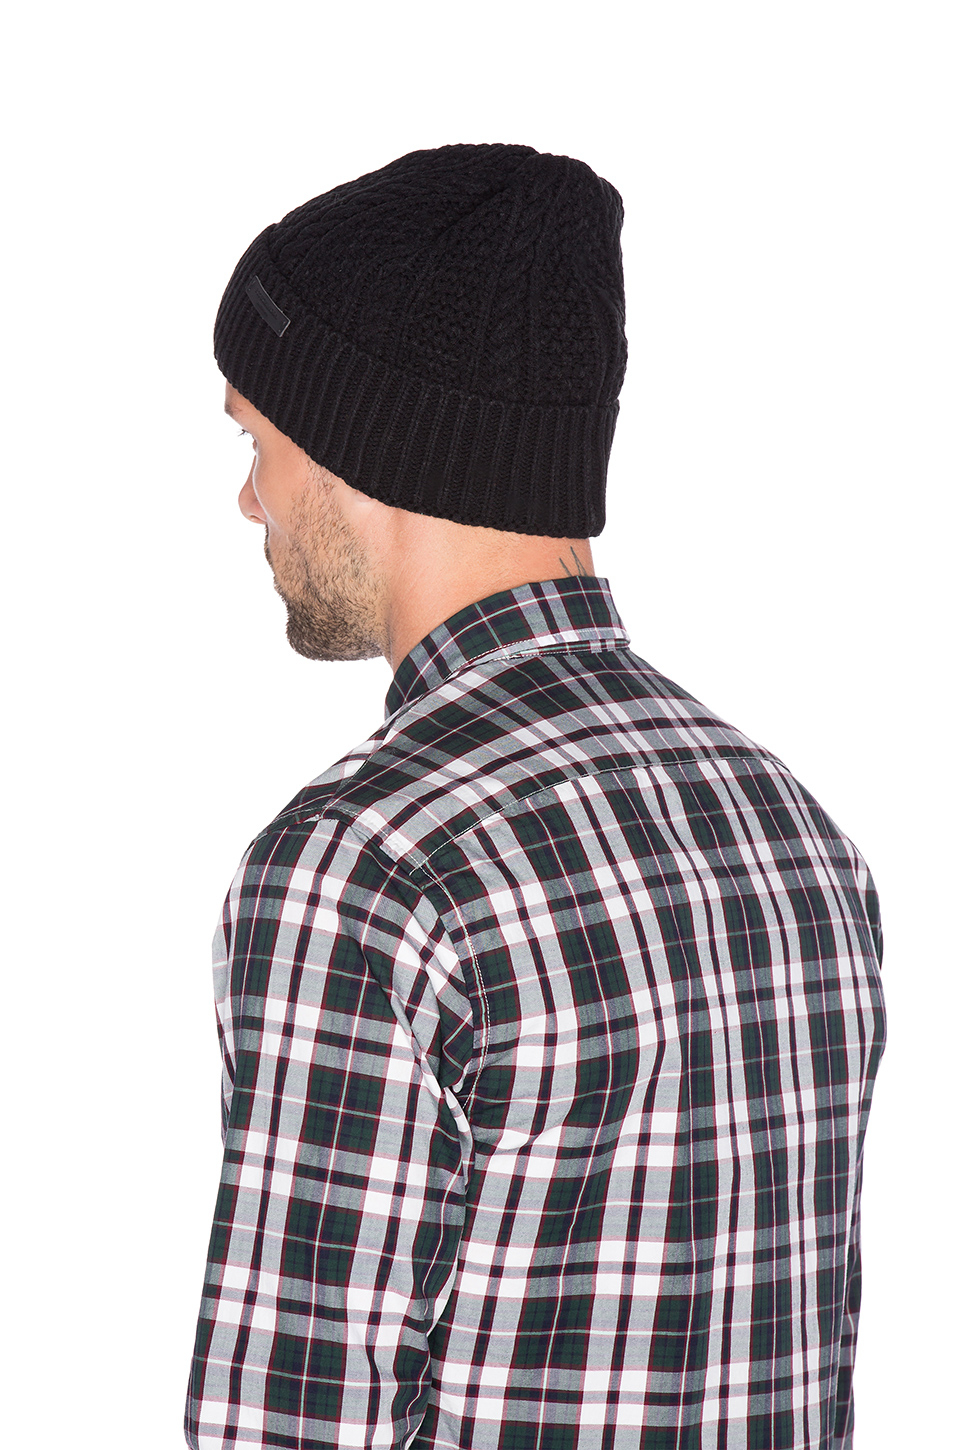 Lyst - Scotch   Soda Beanie In Monsanto Quality in Black for Men 0eded3be13d